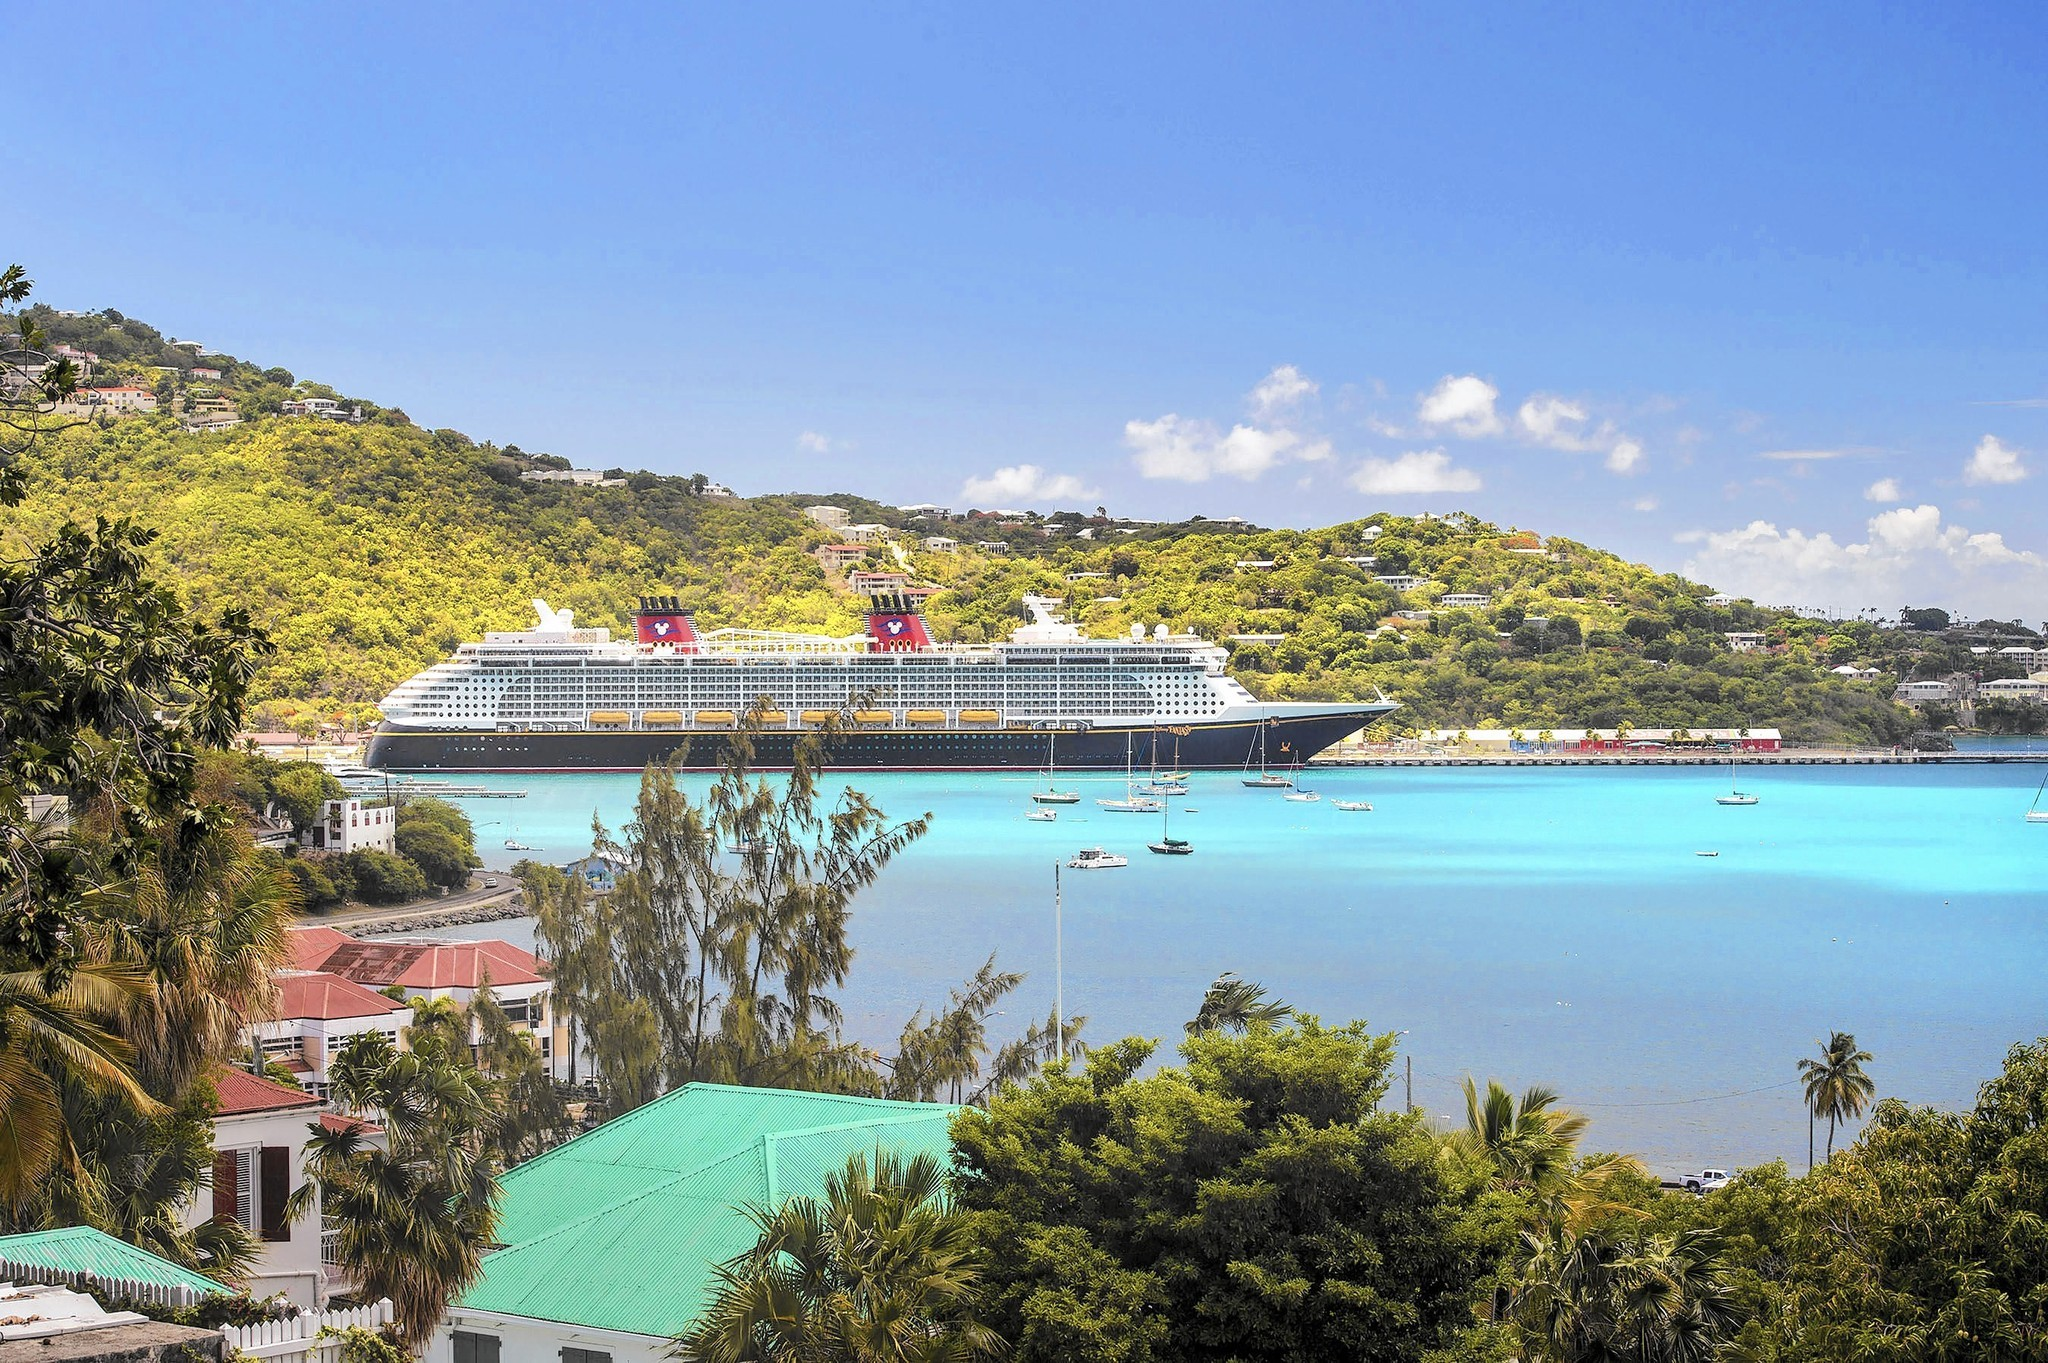 Disney Cruise Line39s Summer 2017 Trips Include Southern Caribbean From Po